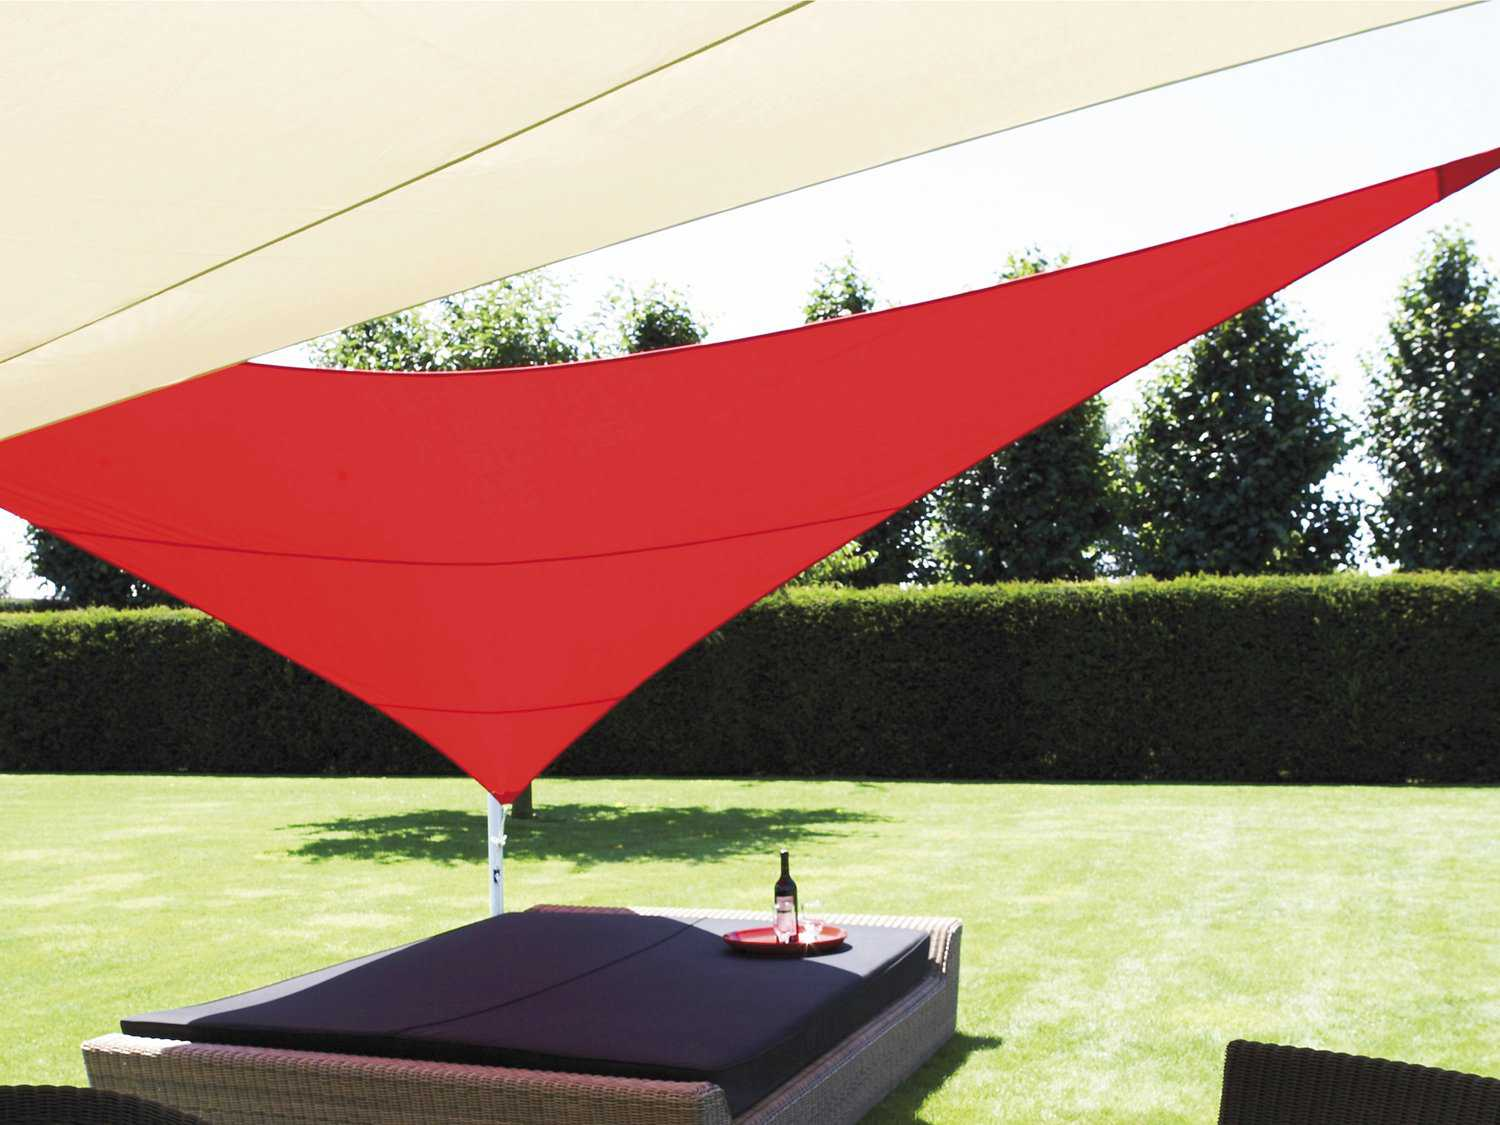 Luxury Umbrellas Ingenua 13 Foot Triangular Anodized